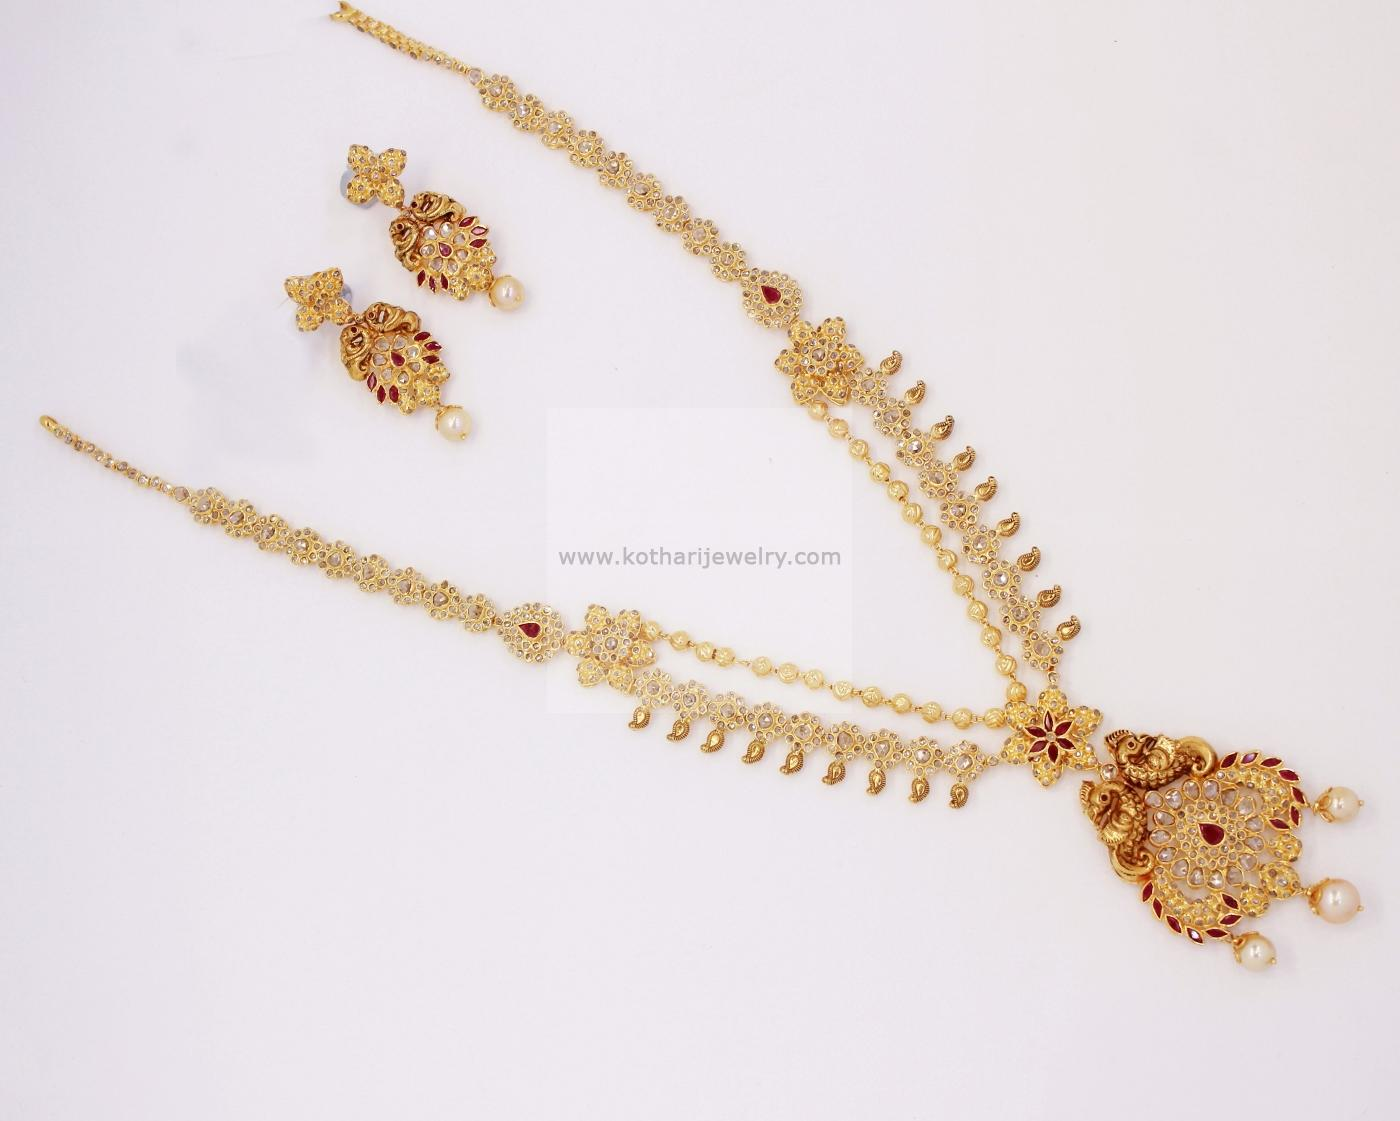 Gold Necklace - 22kt Dori Necklace with Floral Pathakas, Designer ...